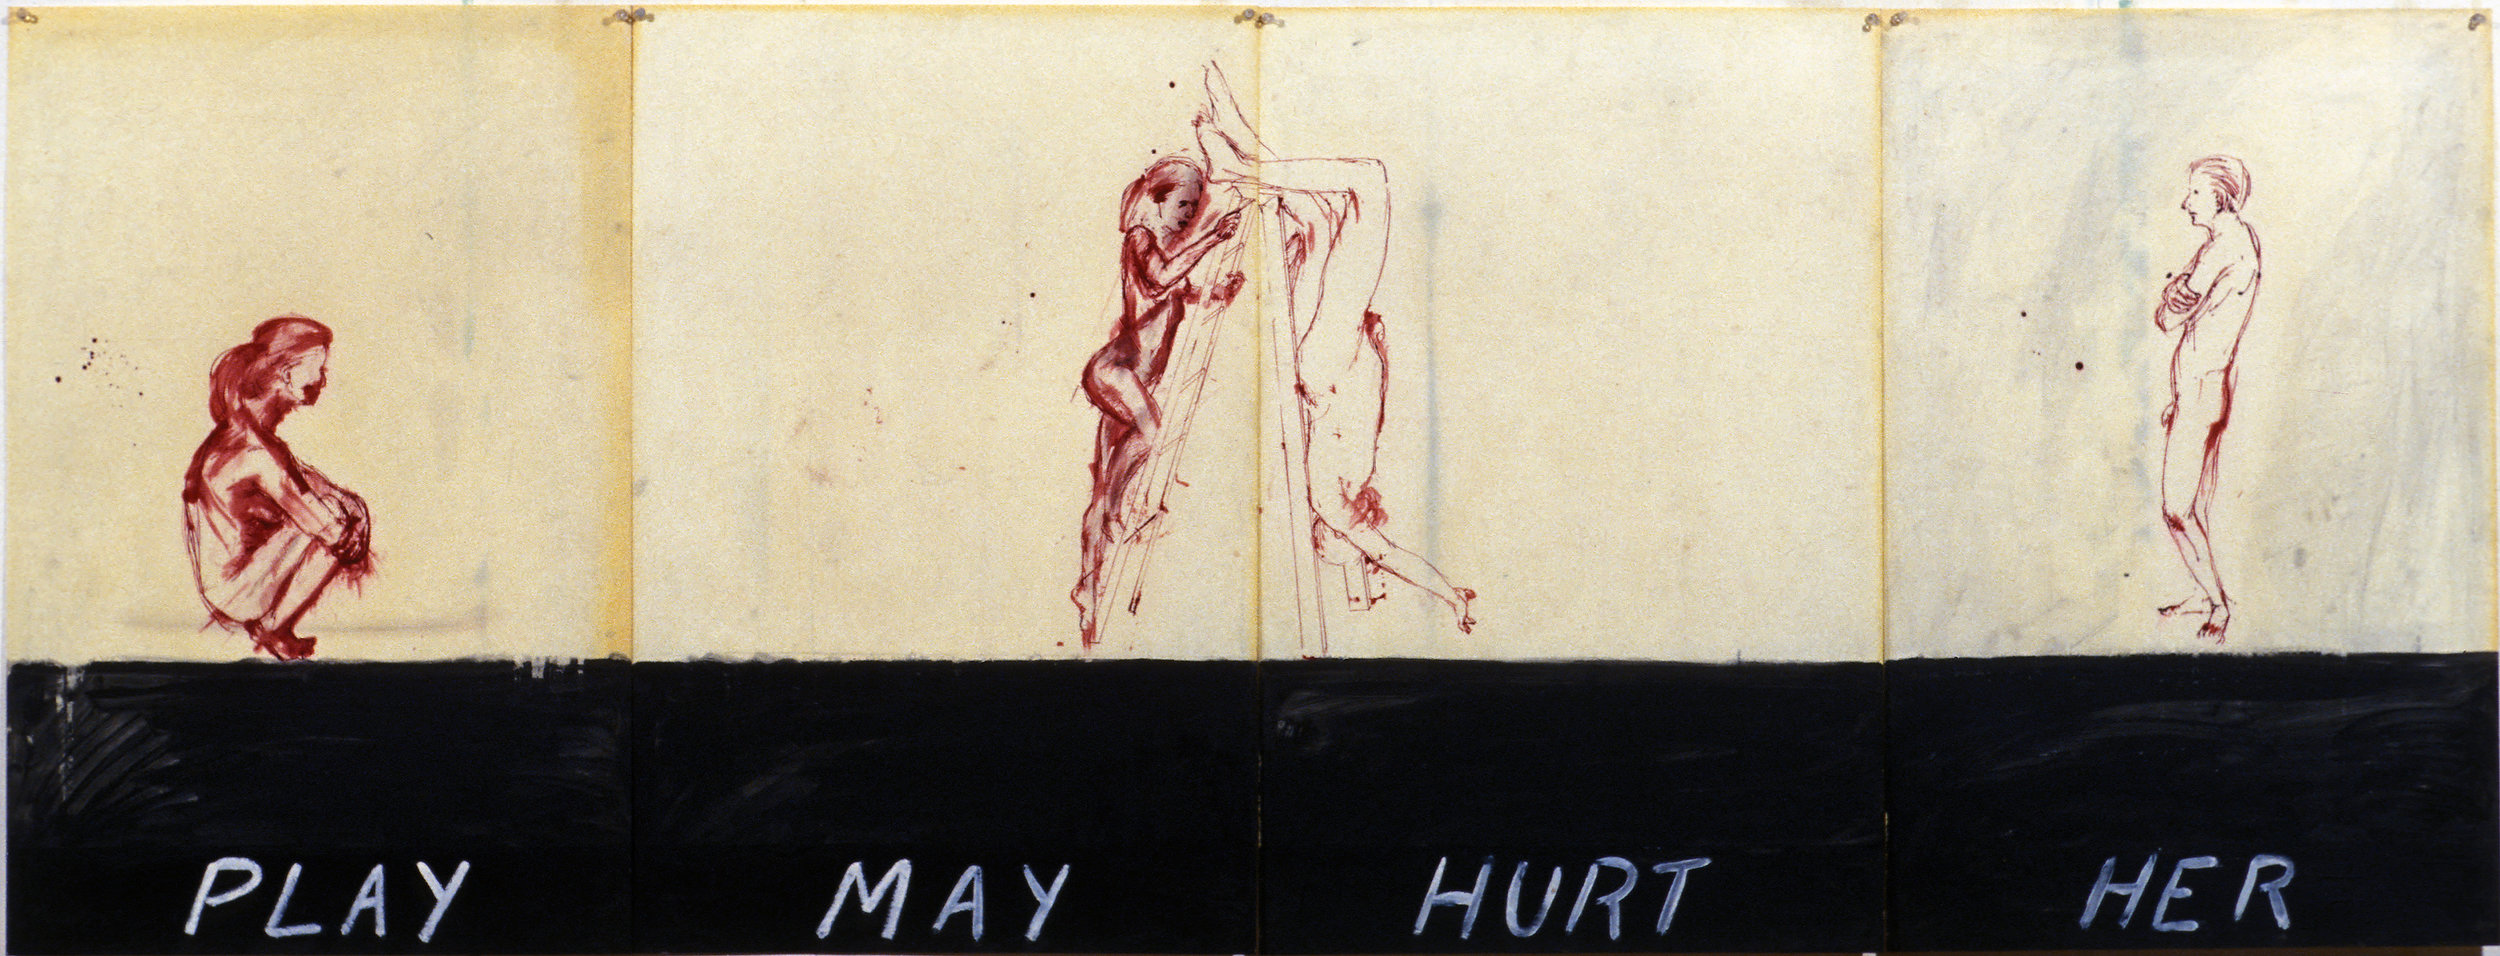 Play May Hurt Her, 1977. oil, paper, wax, pen and ink on paper